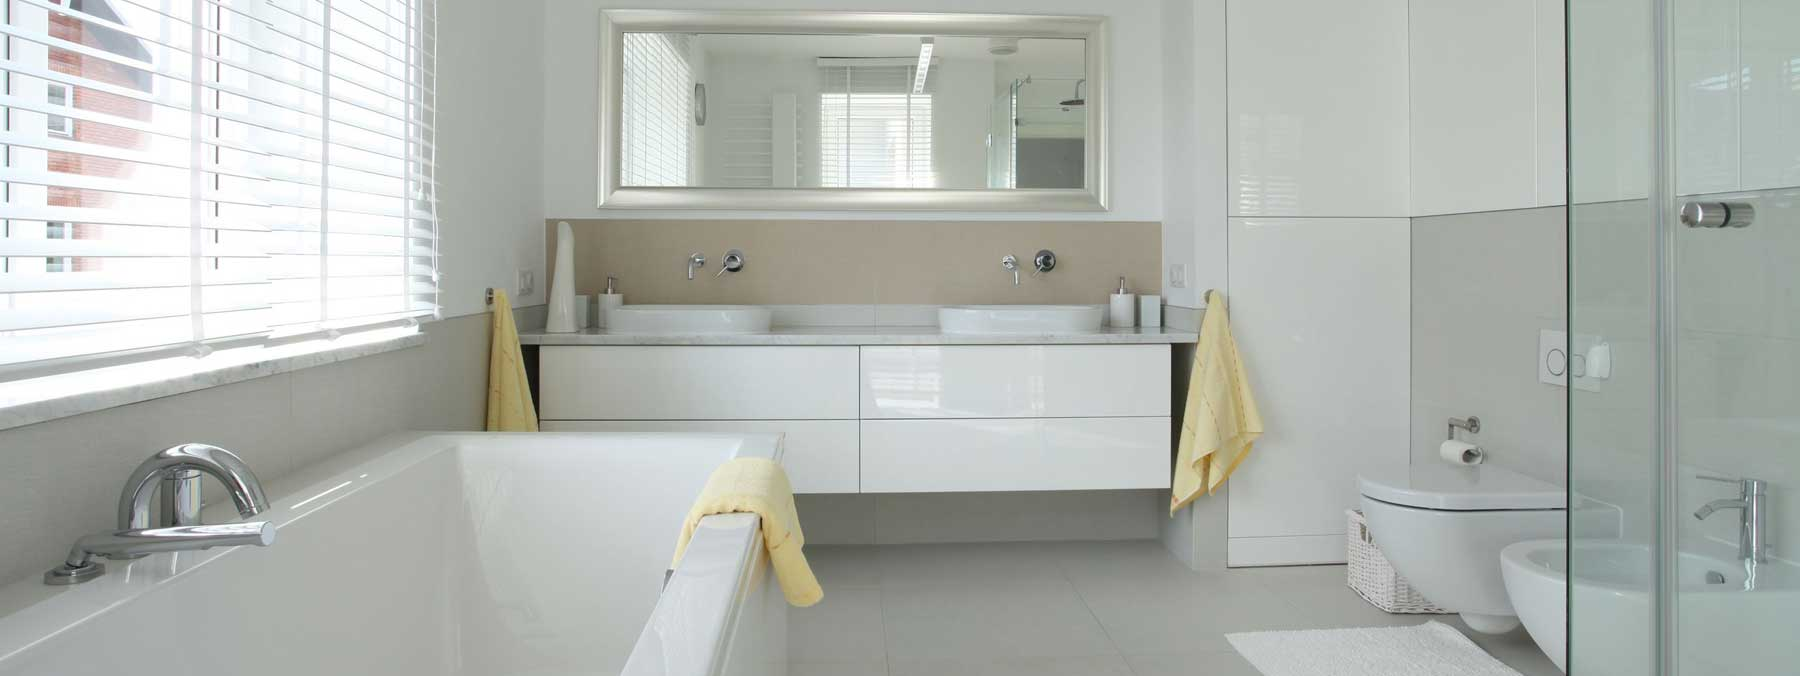 New 50 bathroom renovations sydney cost design ideas of for Bathroom renos images